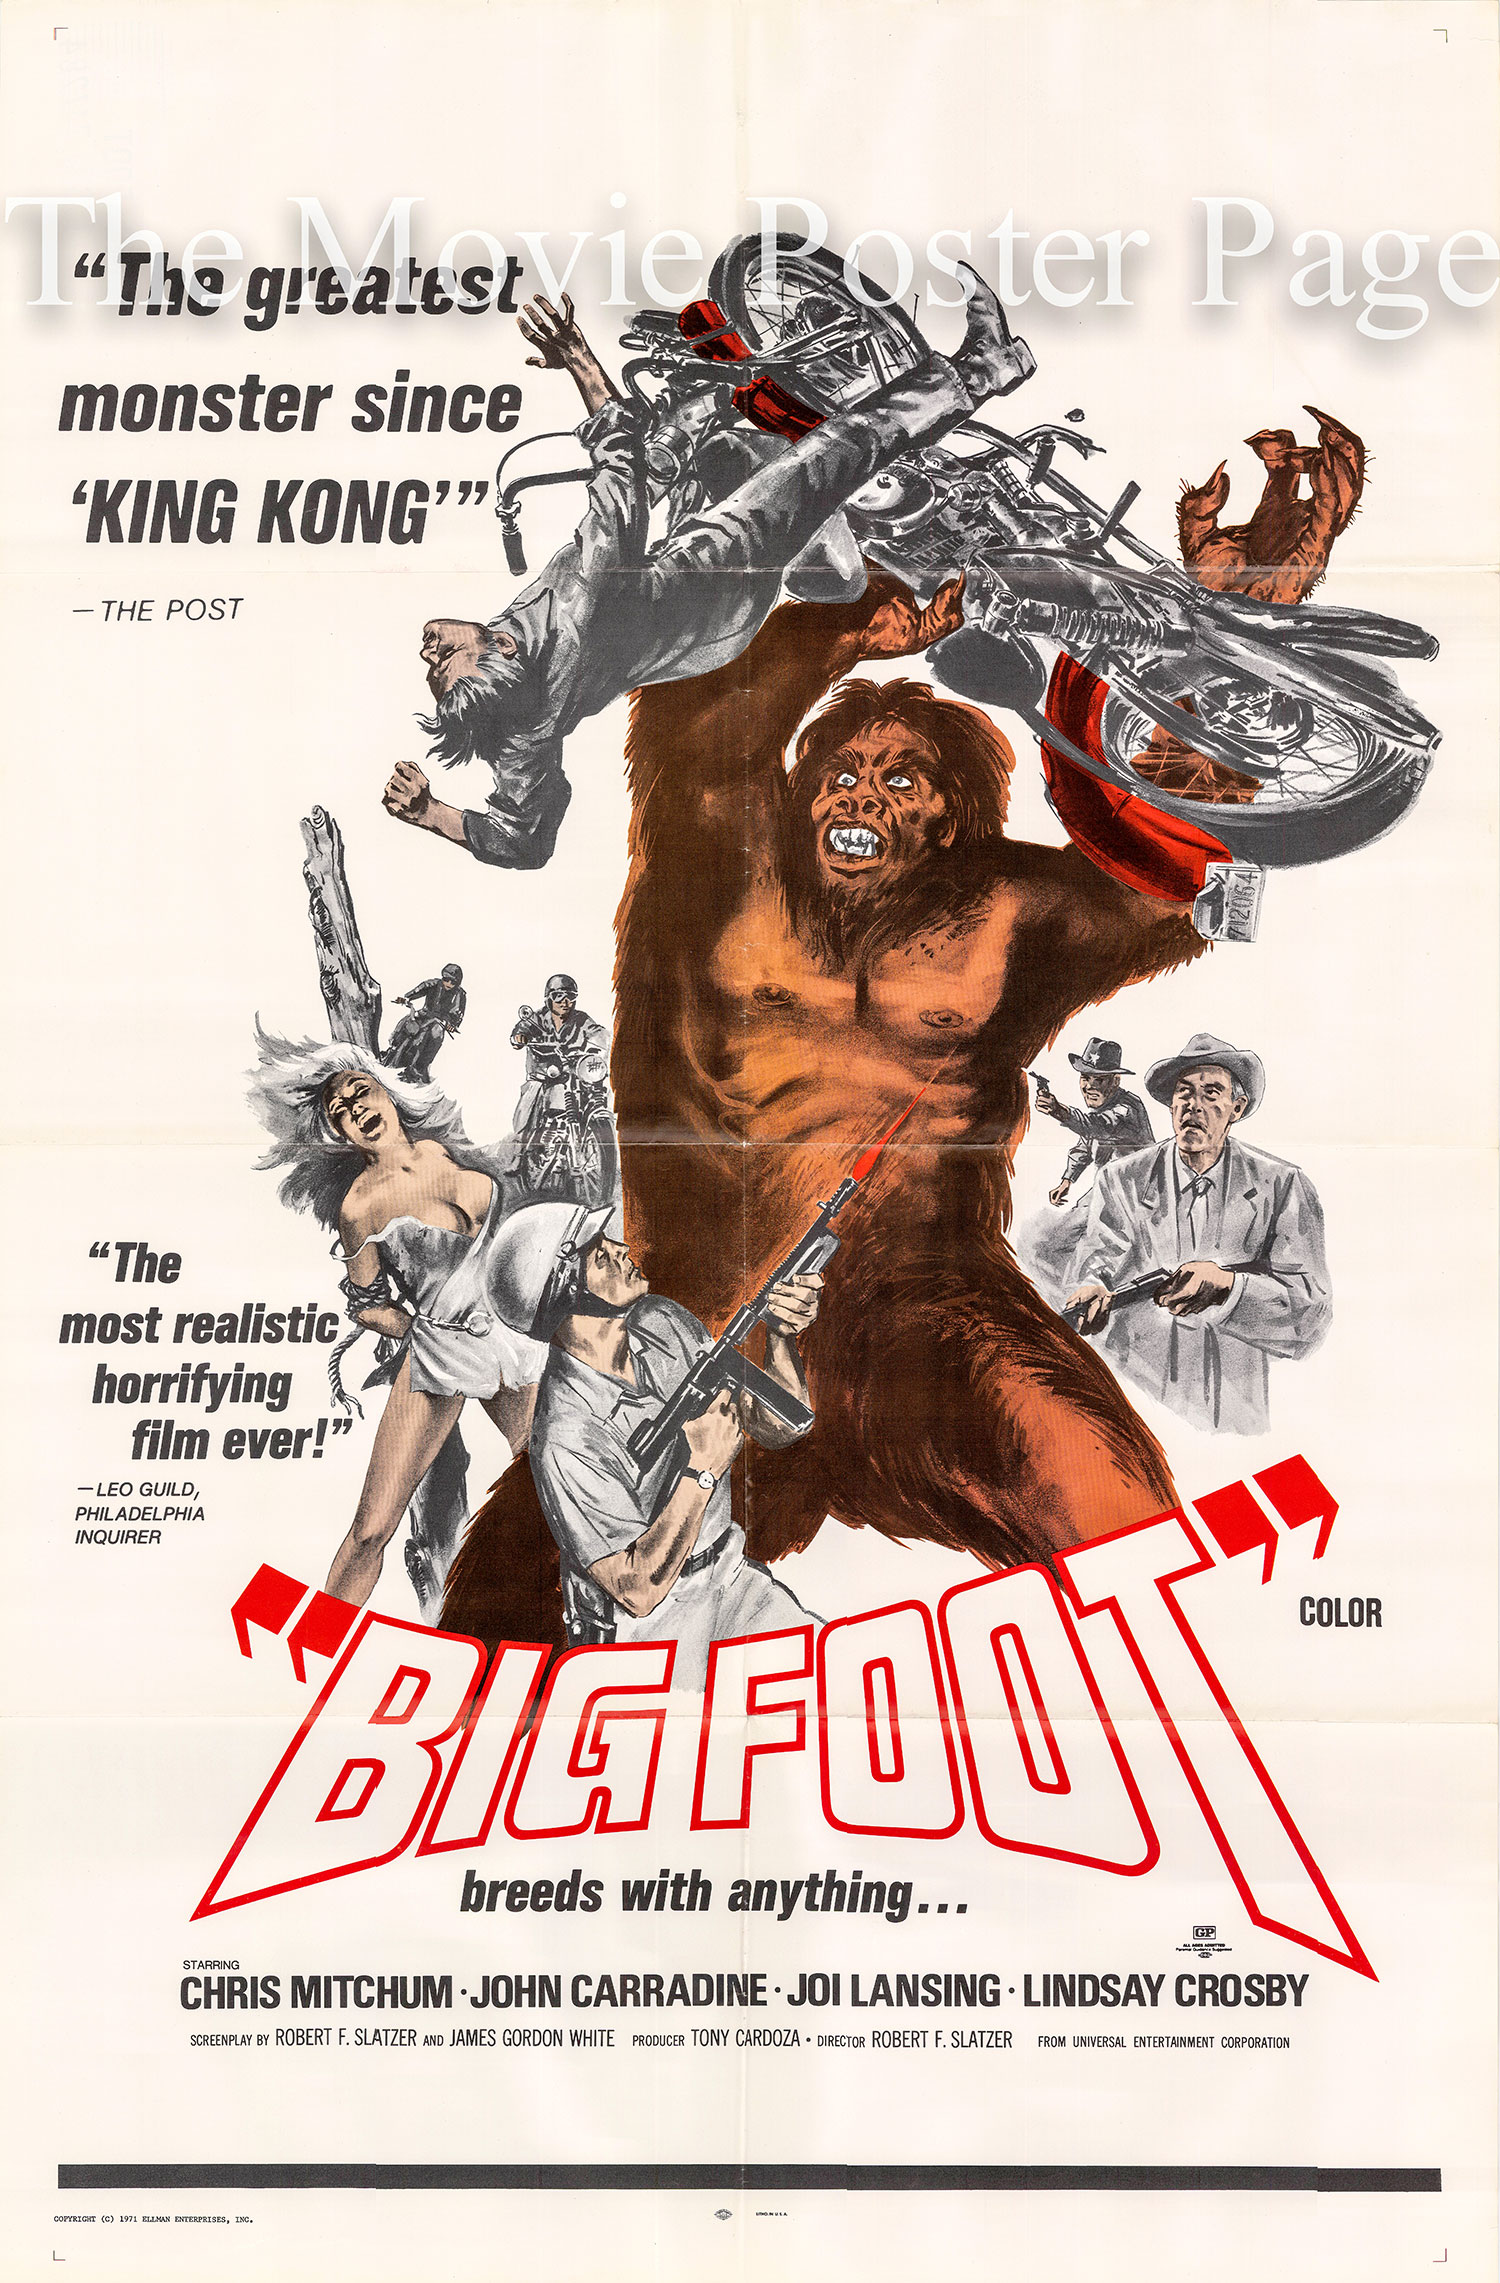 Pictured is a US one-sheet poster for the 1971 Robert F. Slatzer film Big Foot starring John Carradine.